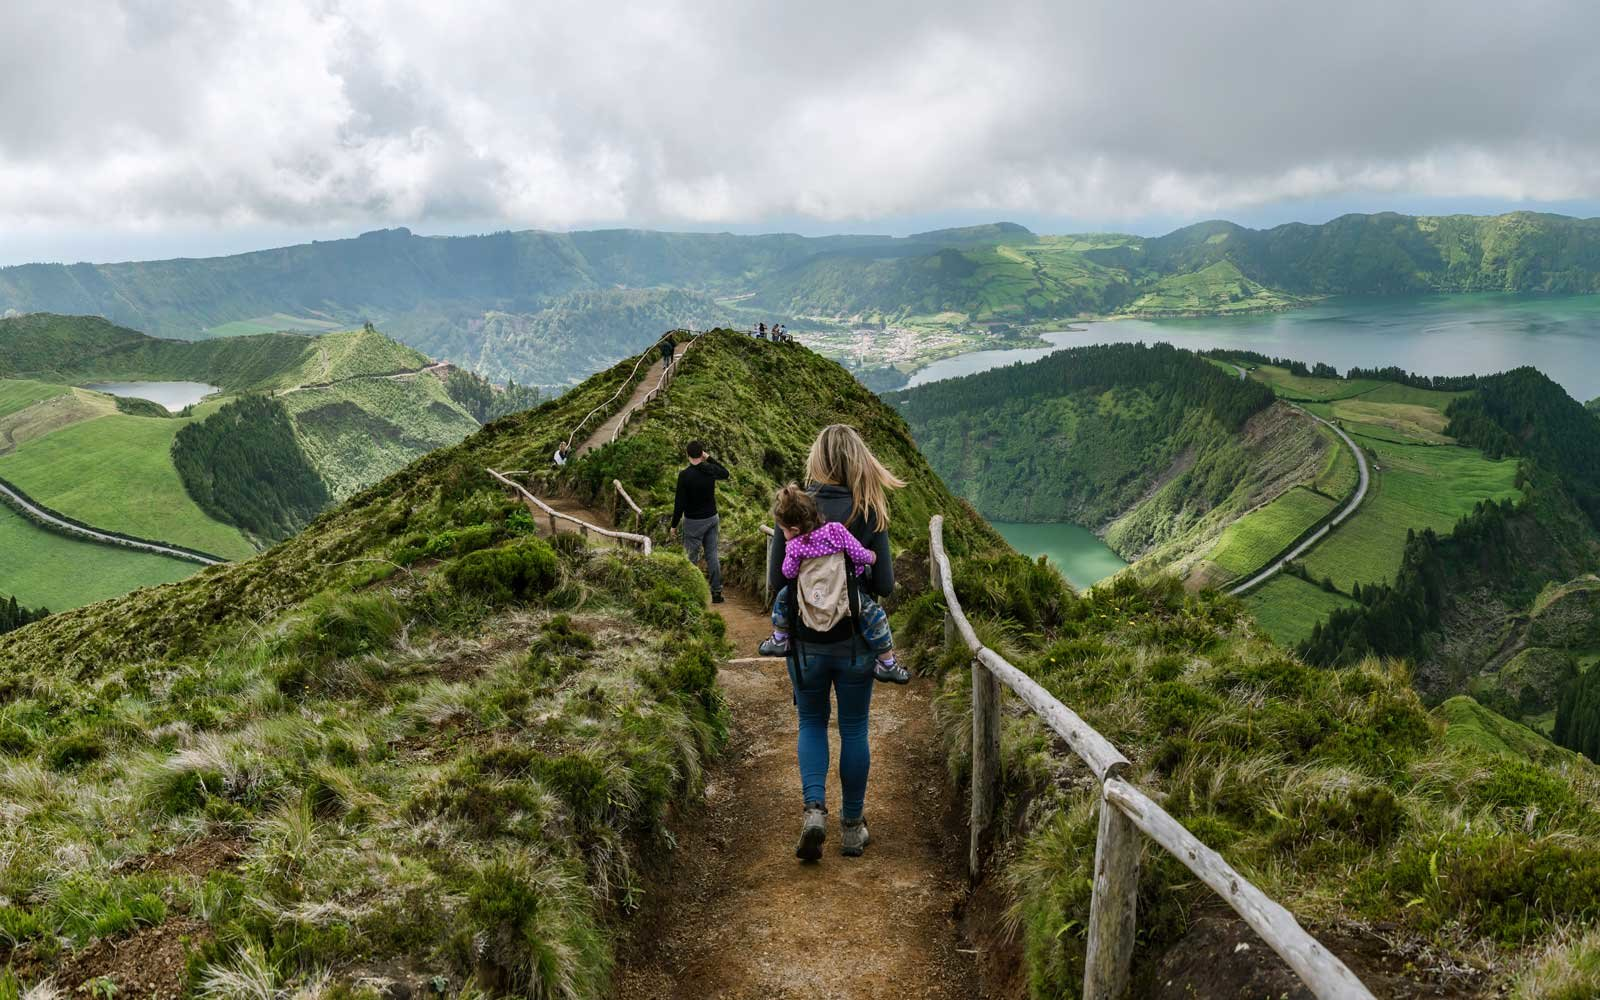 Rear view of female hiker on Sete Cidades Caldara, Sao Miguel Island, Azores, Portugal